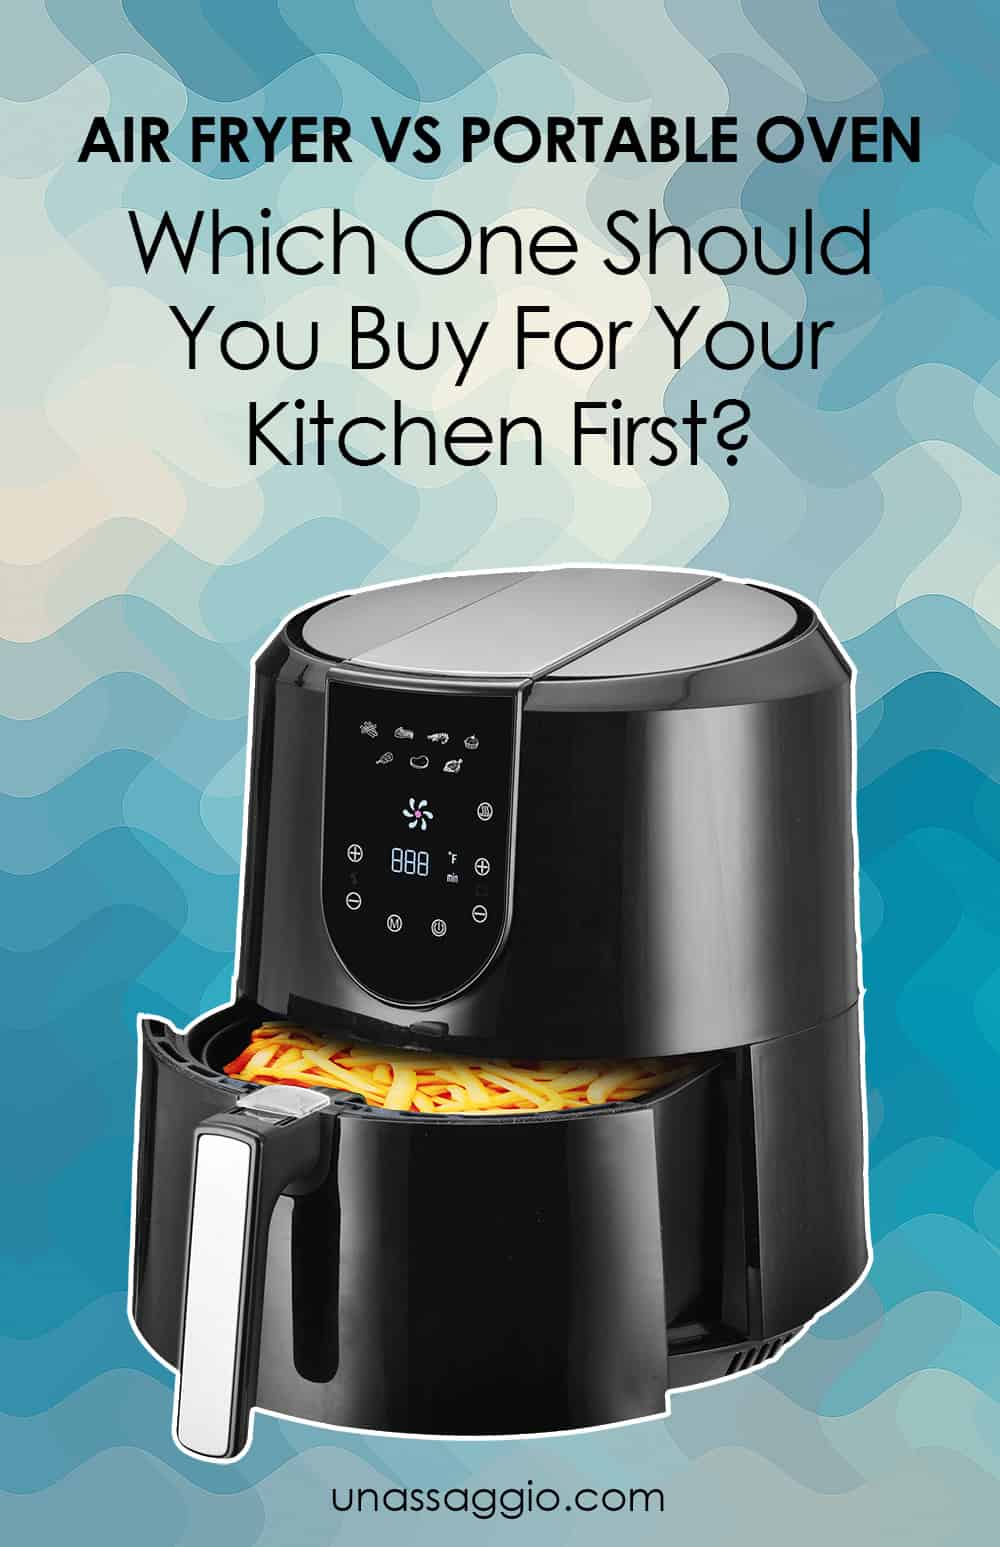 Air Fryer vs Portable Oven